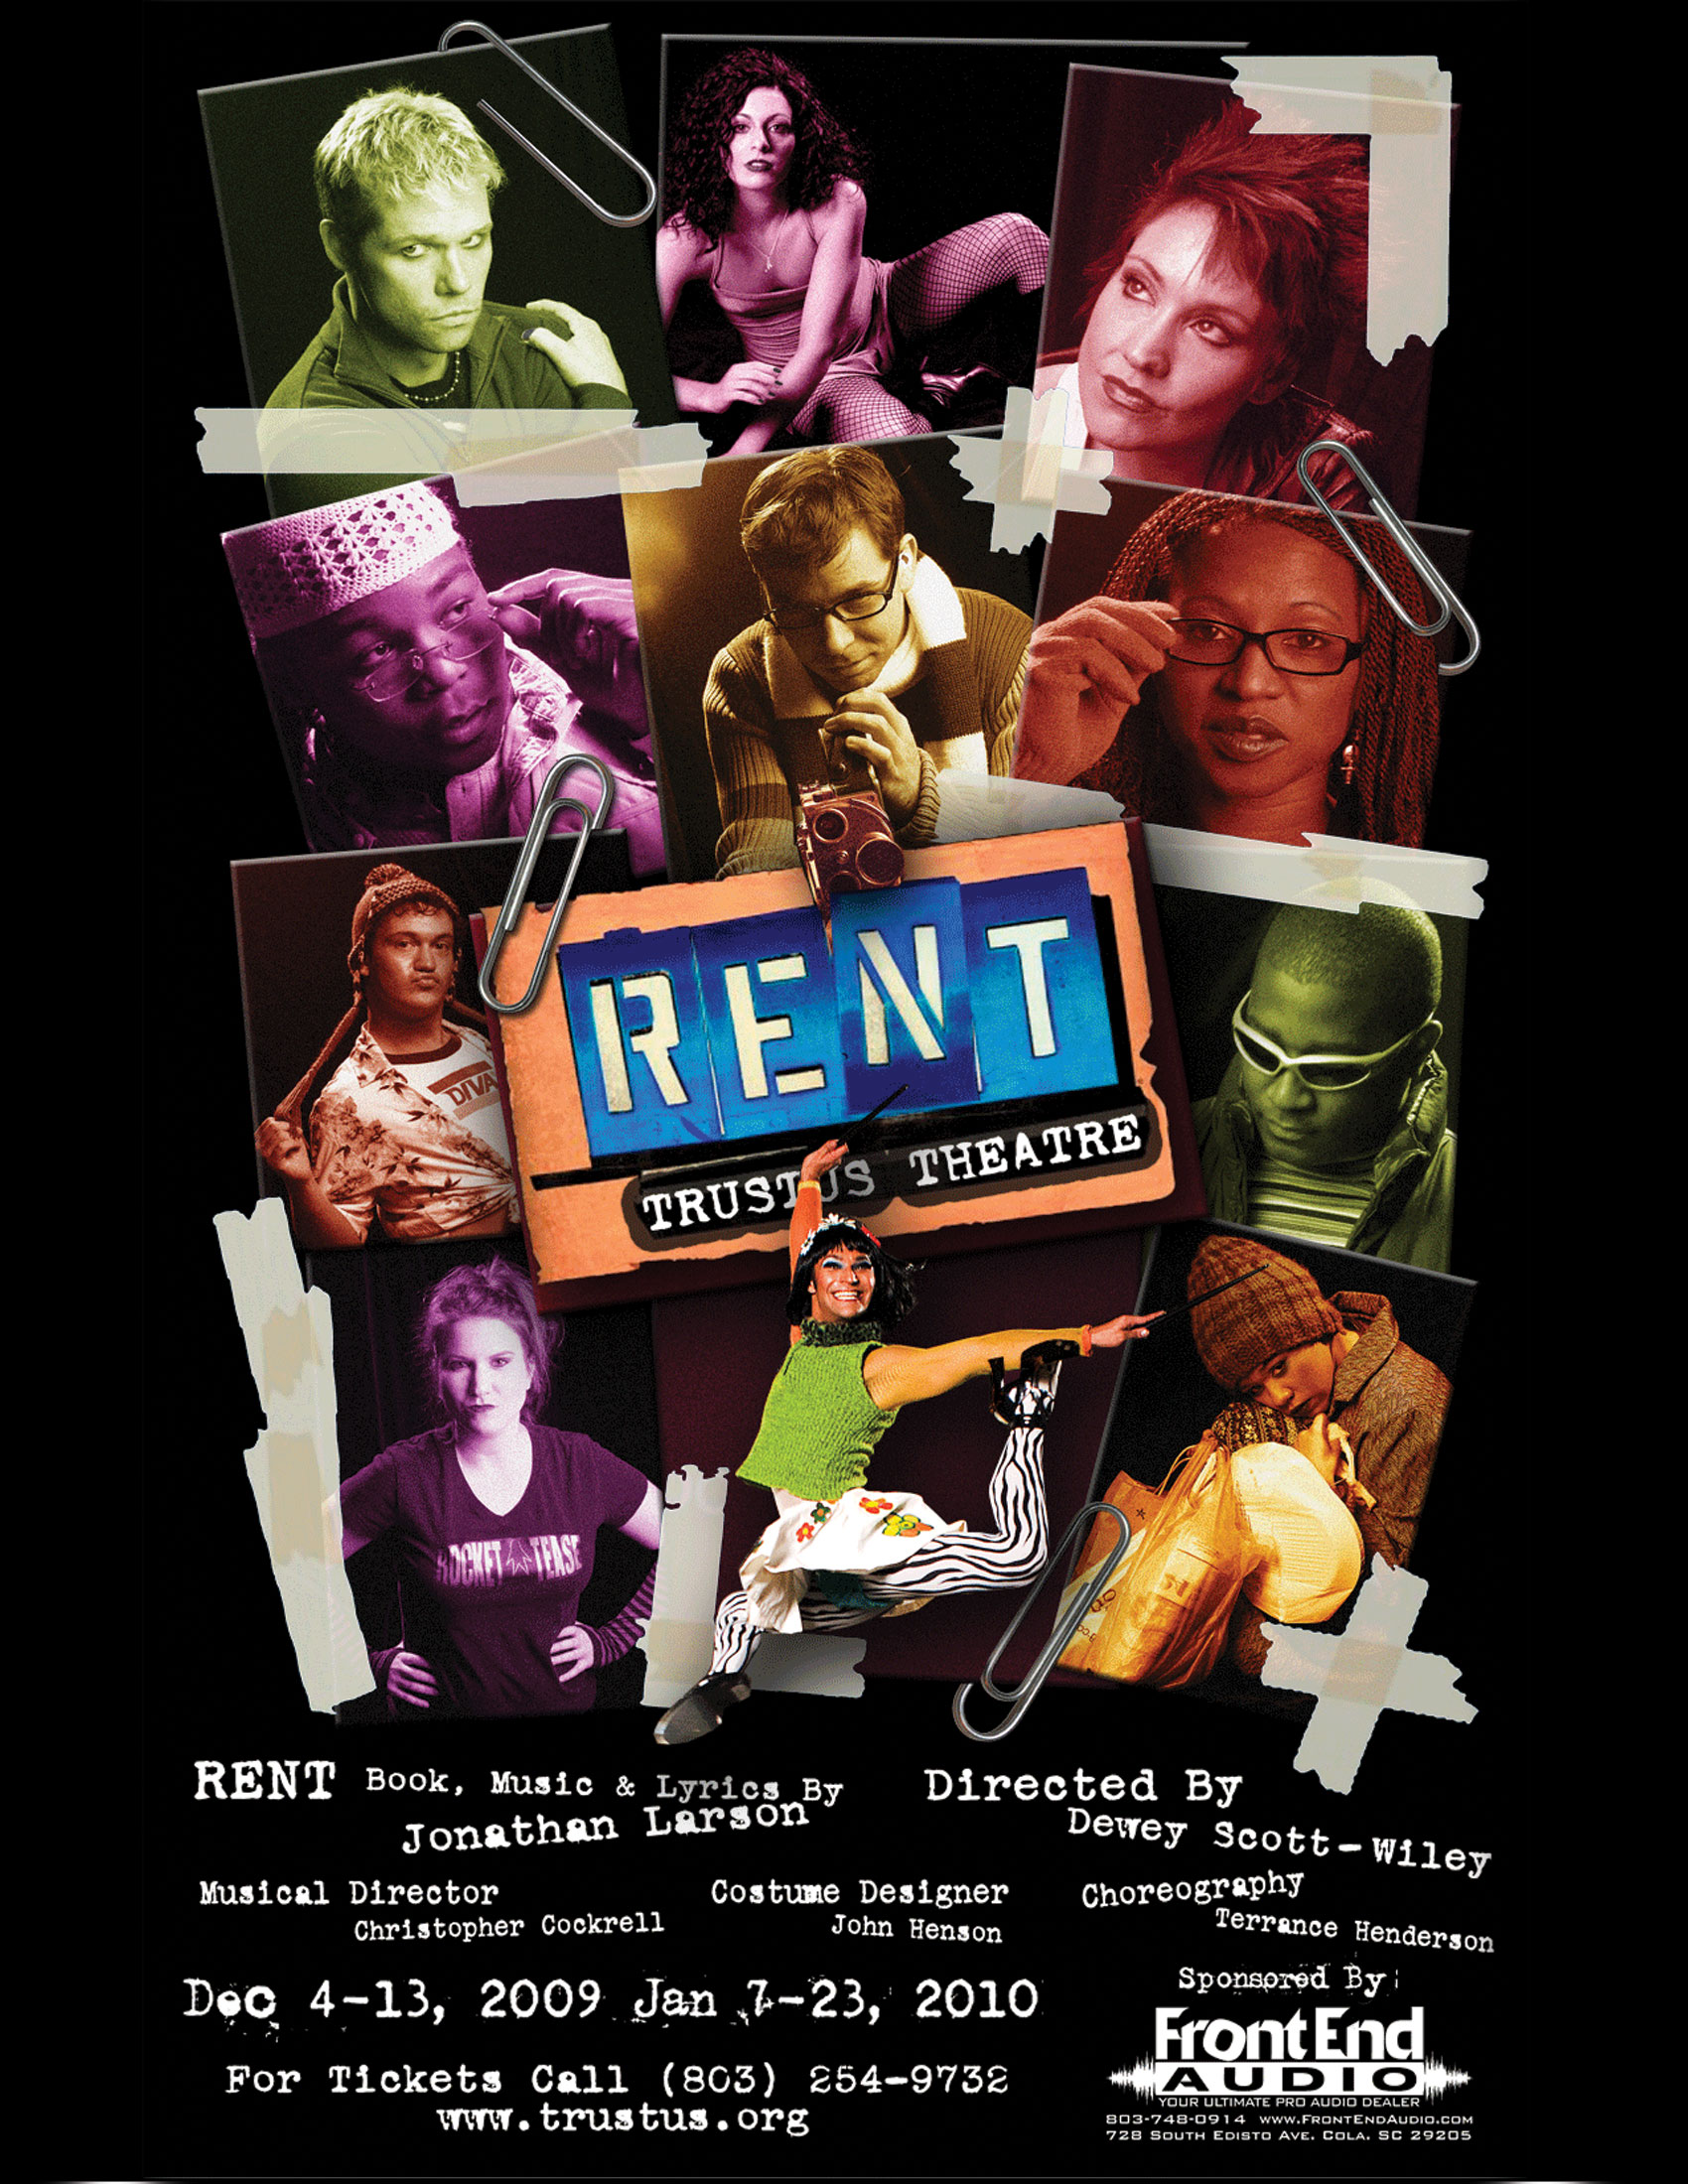 rent musical analysis In fact, rent backlash has taken a while to percolate alongside the recent cultural  resurgence the musical has enjoyed in its 20th anniversary.